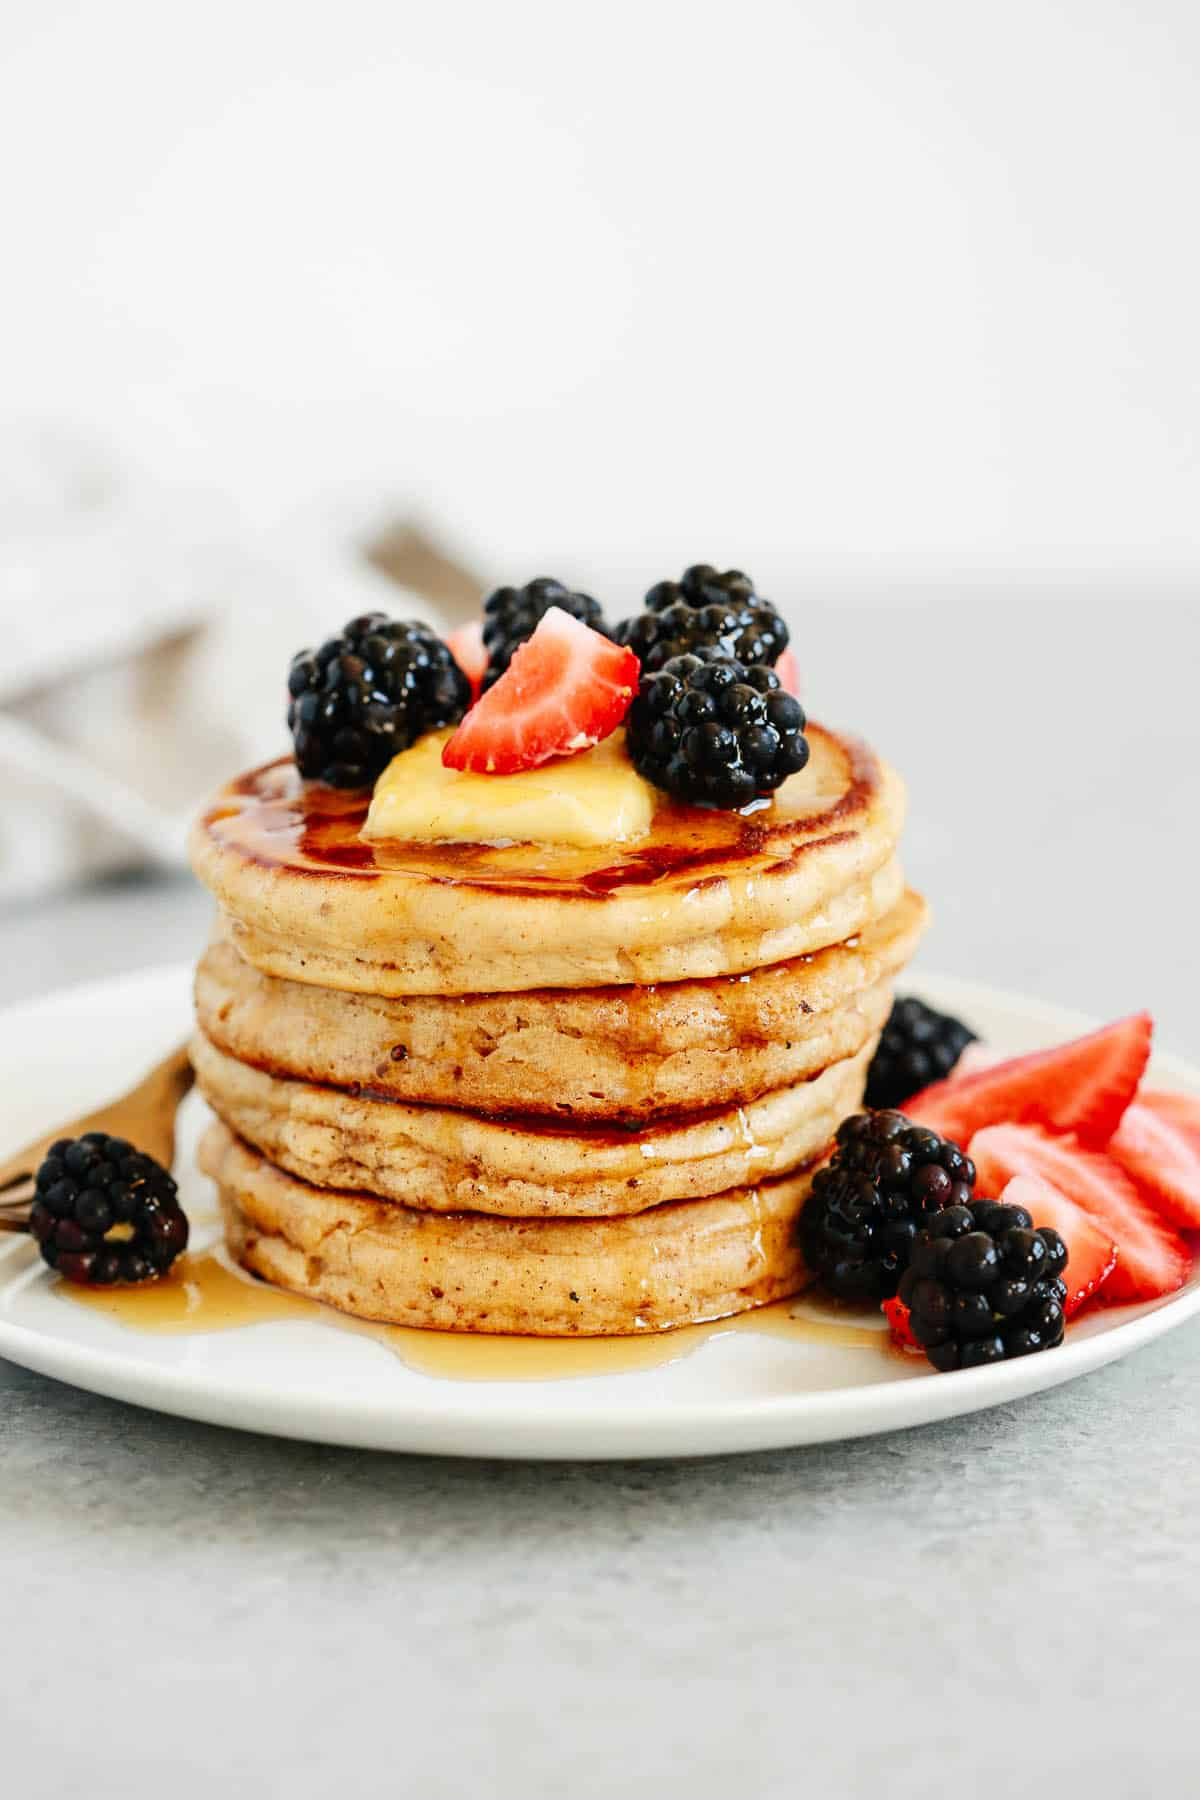 stack of gluten free pancakes topped with syrup and berries on a white plate